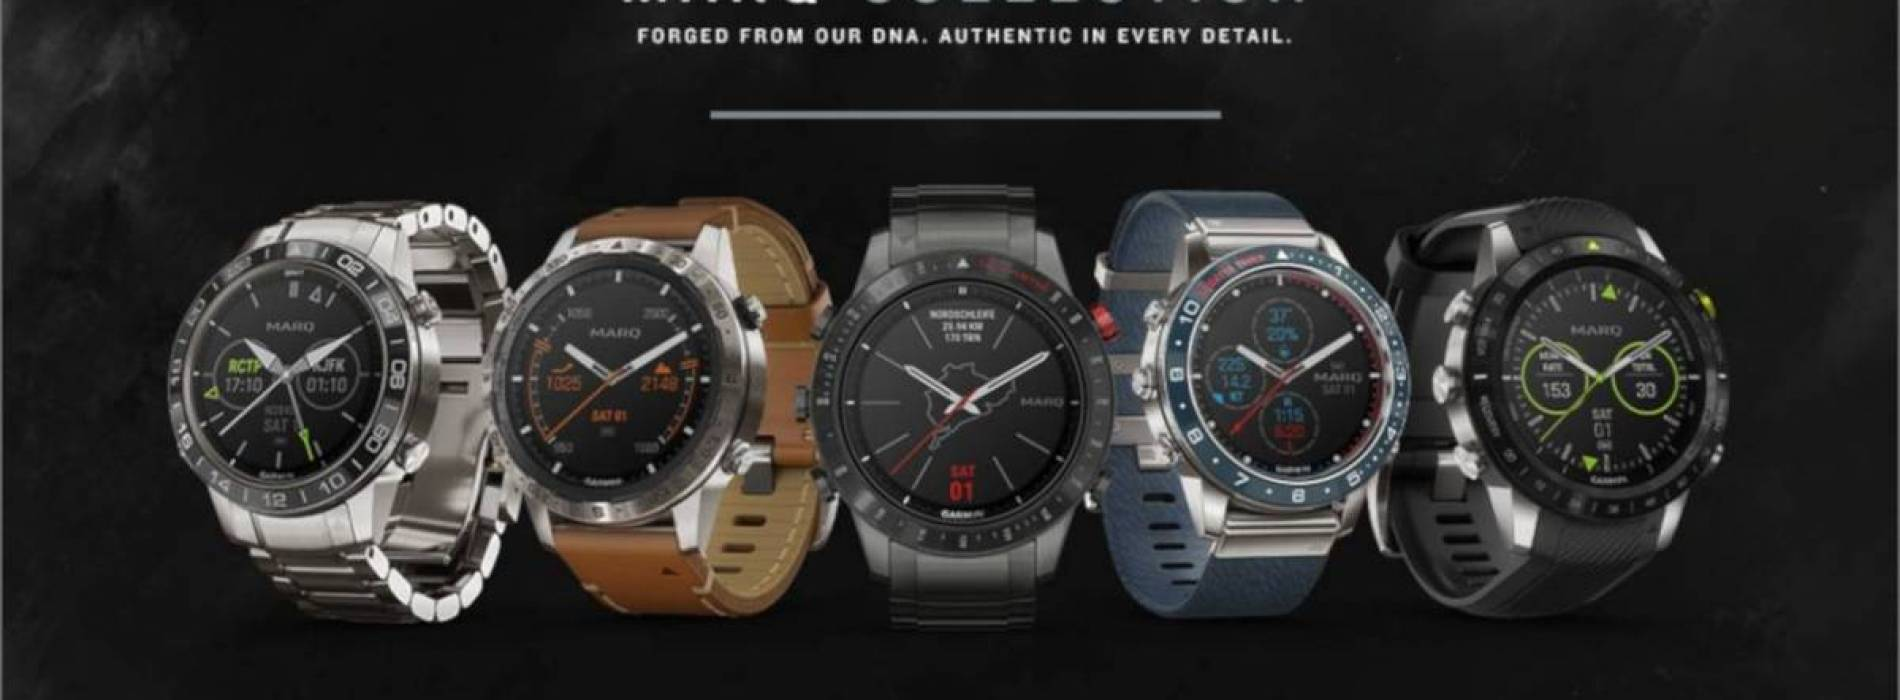 Conoce la gama de relojes MARQ Collection de Garmin